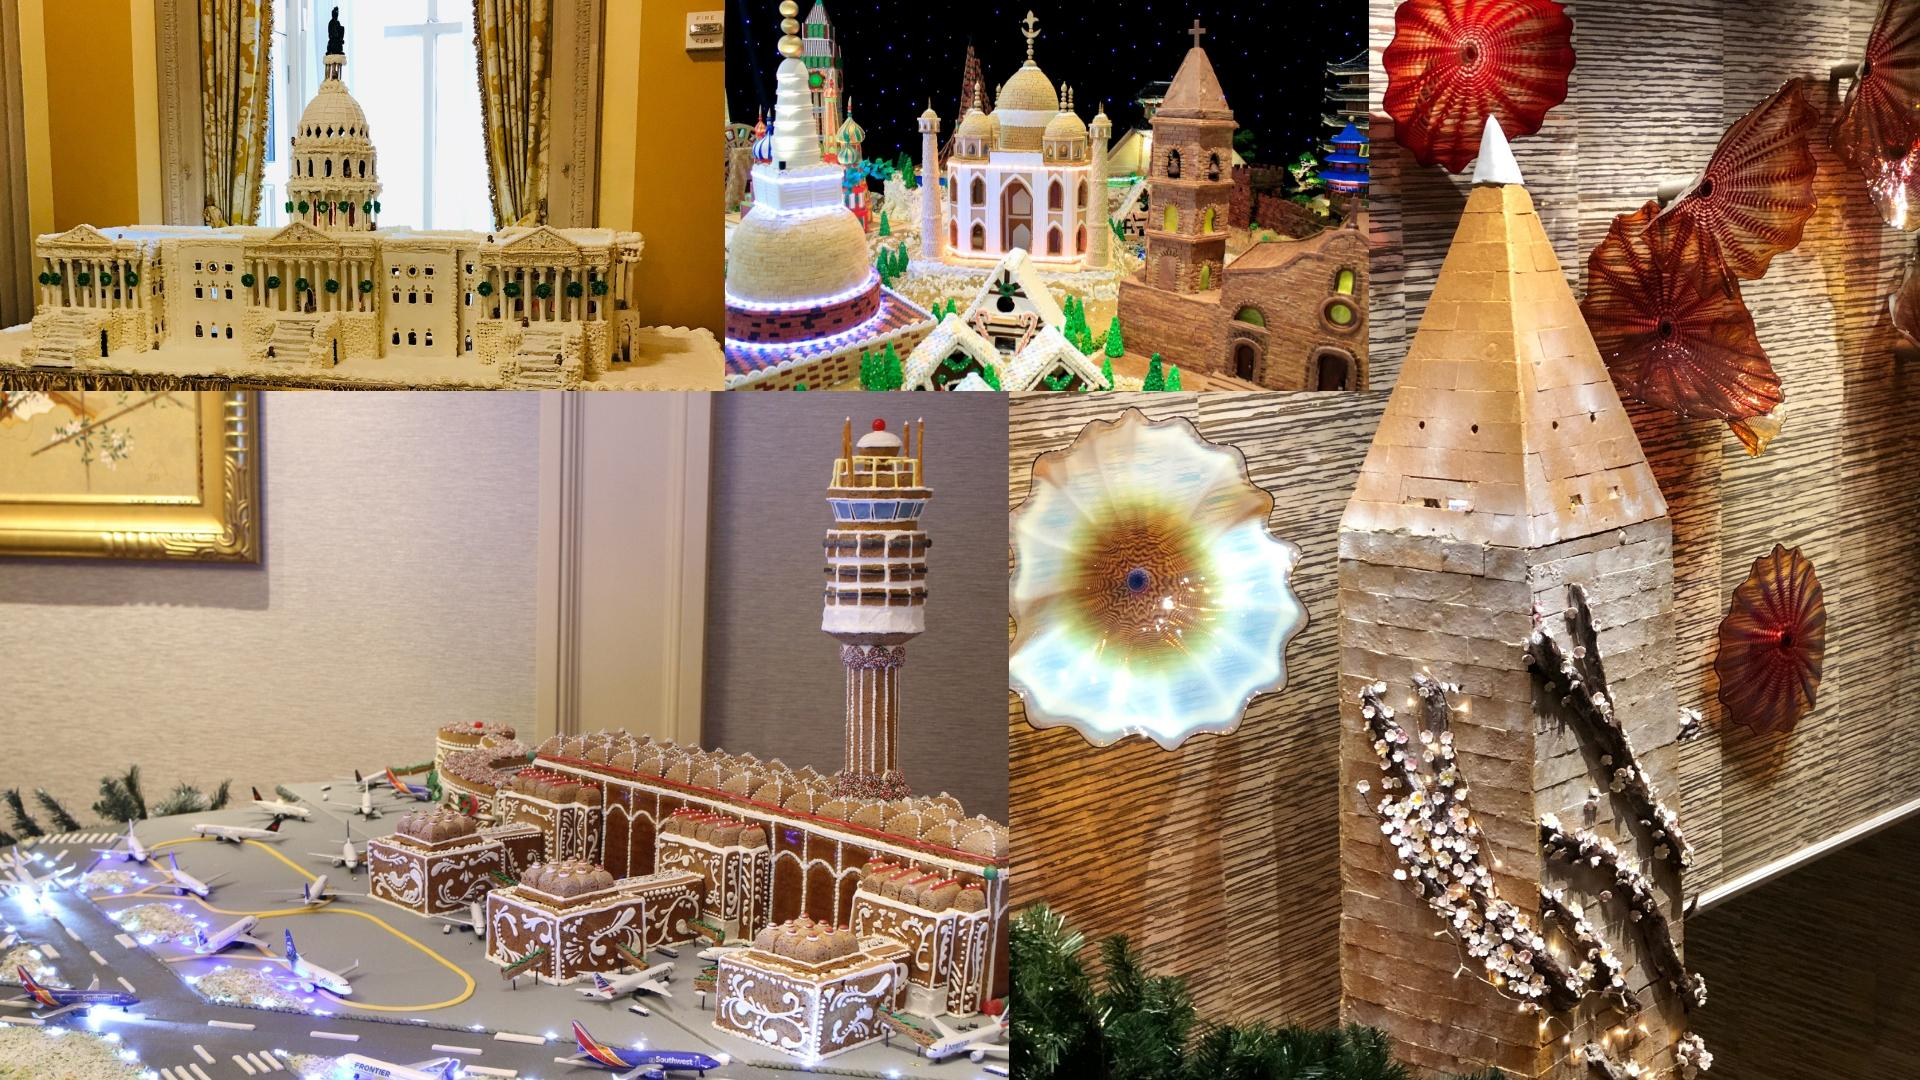 Let's be honest, the holiday season can't truly start until you've seen at least one giant, over-the-top gingerbread display! Luckily for you, we have four for you to check off your list this year! (Courtesy Images)